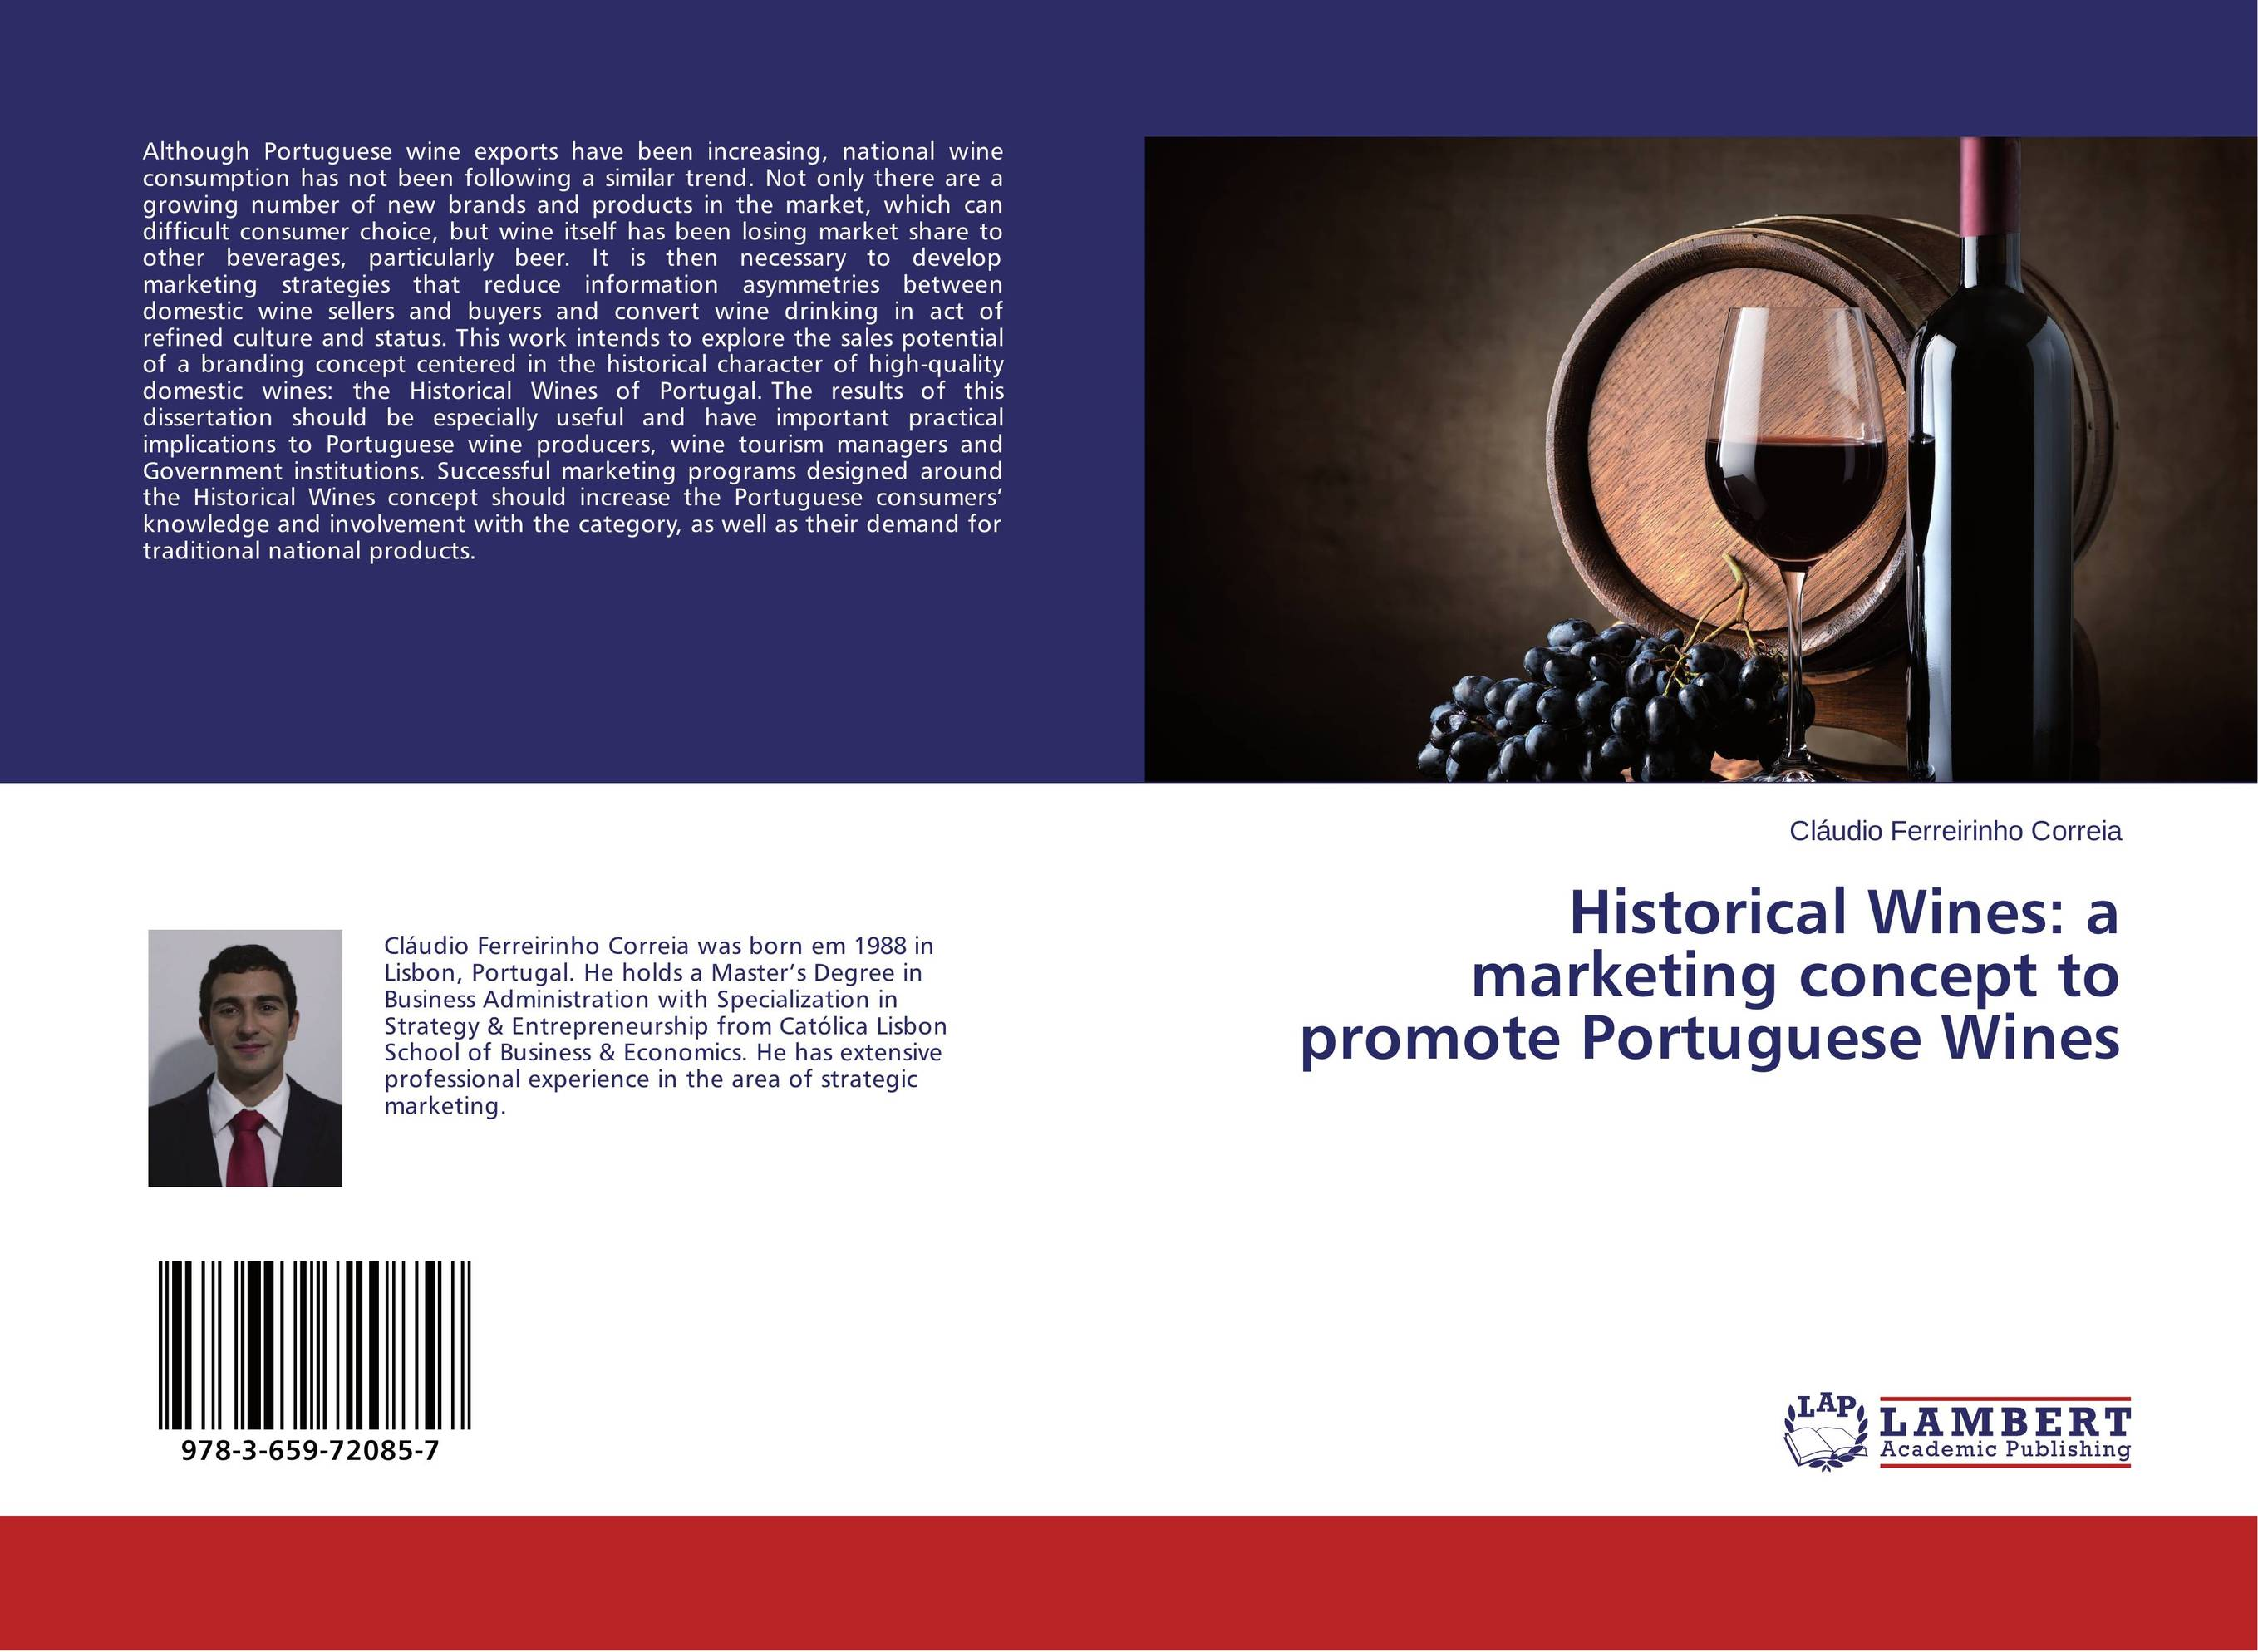 Historical Wines: a marketing concept to promote Portuguese Wines 620 wine not